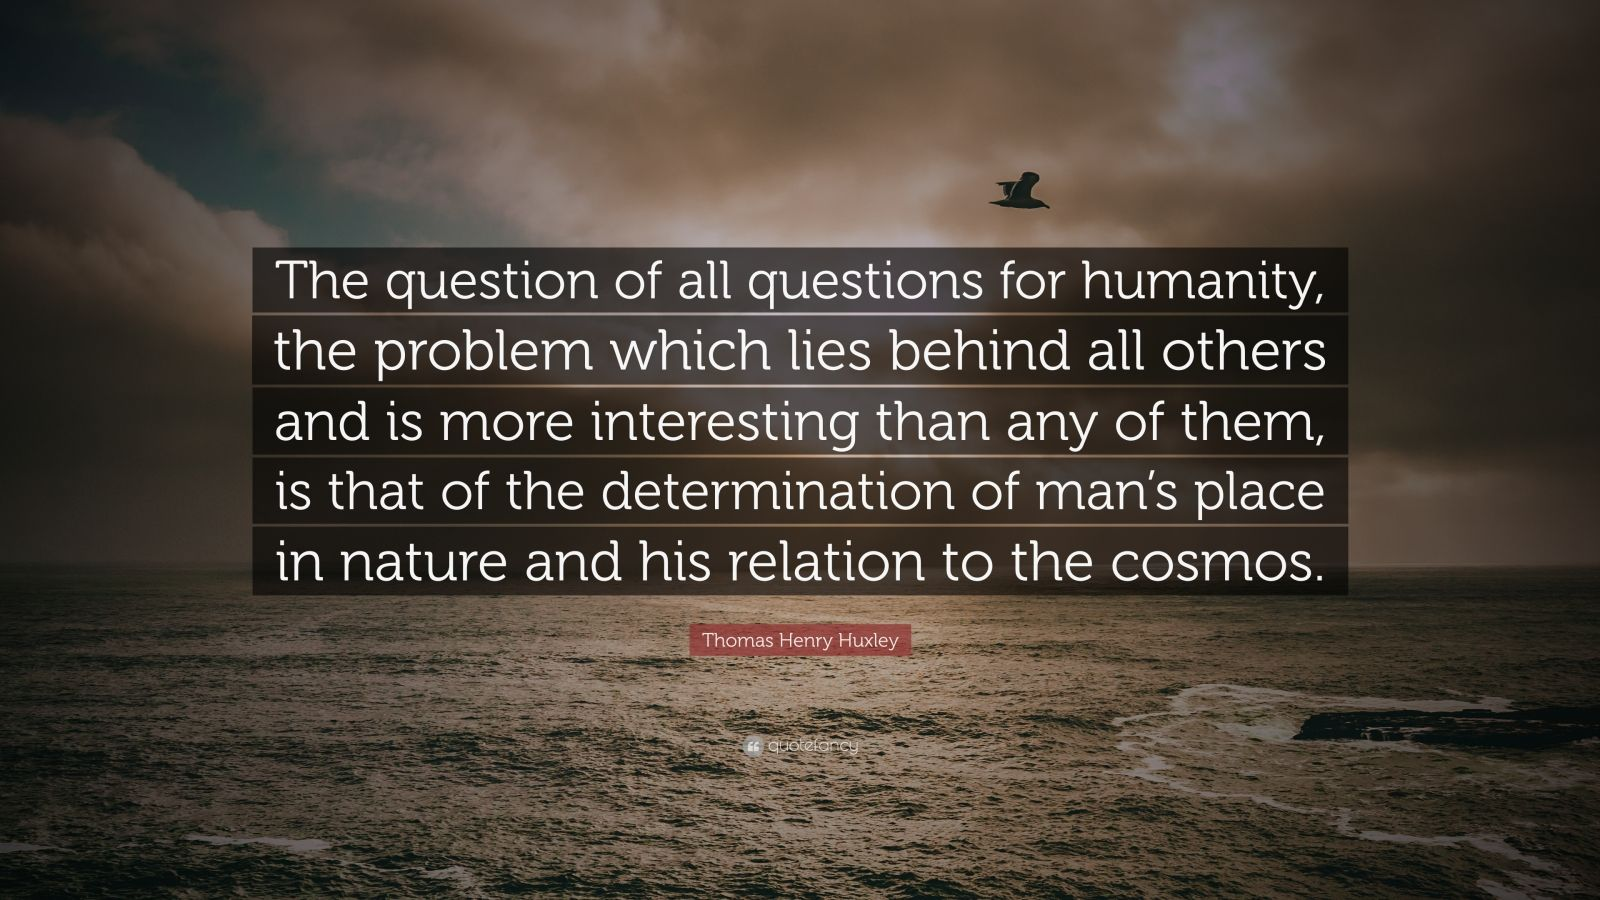 """Thomas Henry Huxley Quote: """"The question of all questions for humanity, the problem which lies behind all others and is more interesting than any of them, is that of the determination of man's place in nature and his relation to the cosmos."""""""